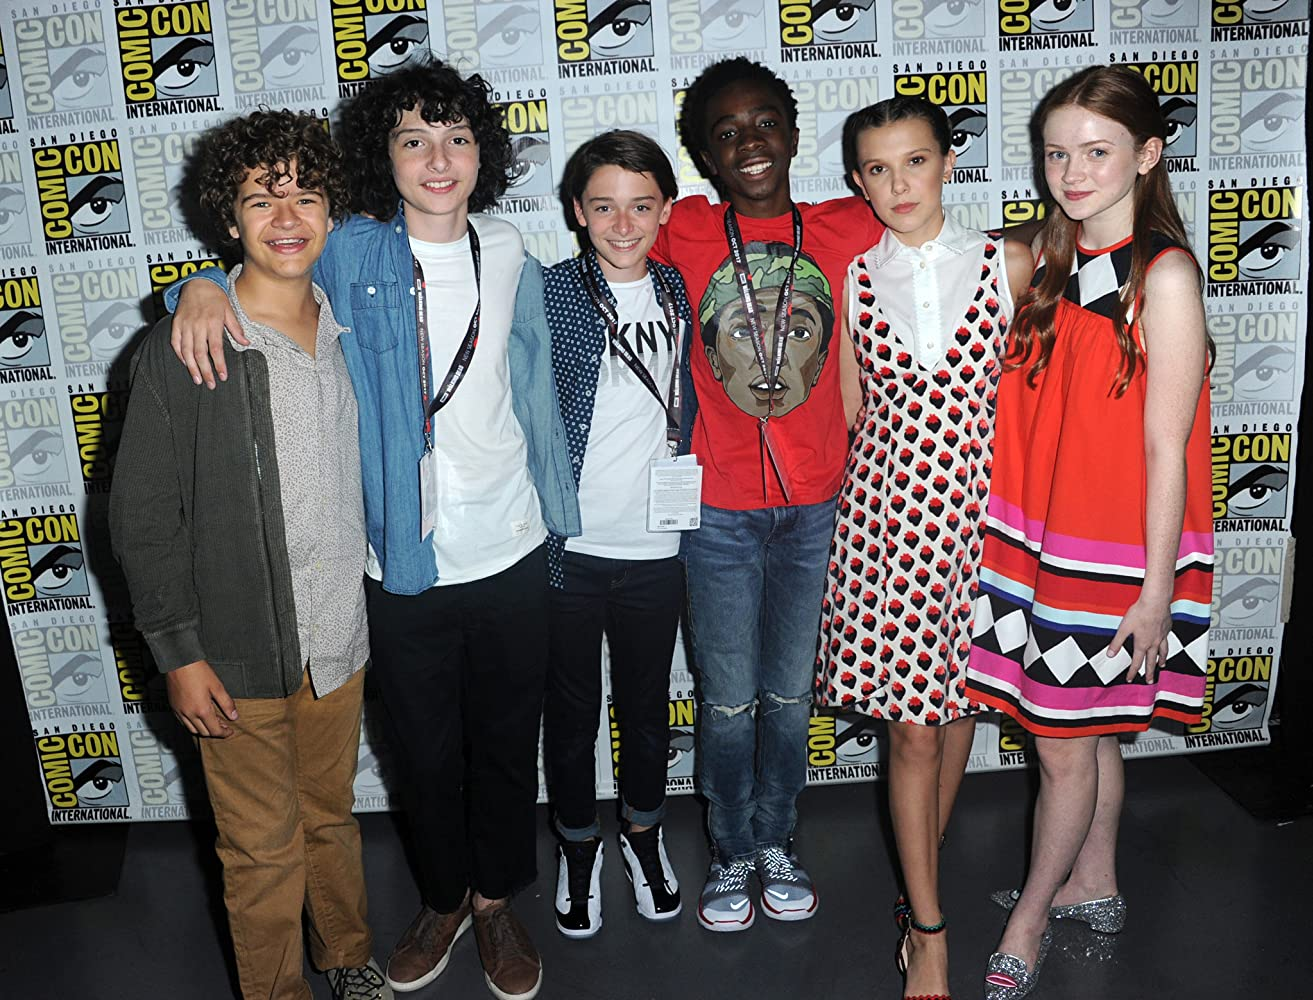 11 Things We Learned From The Stranger Things Comic Con Panel